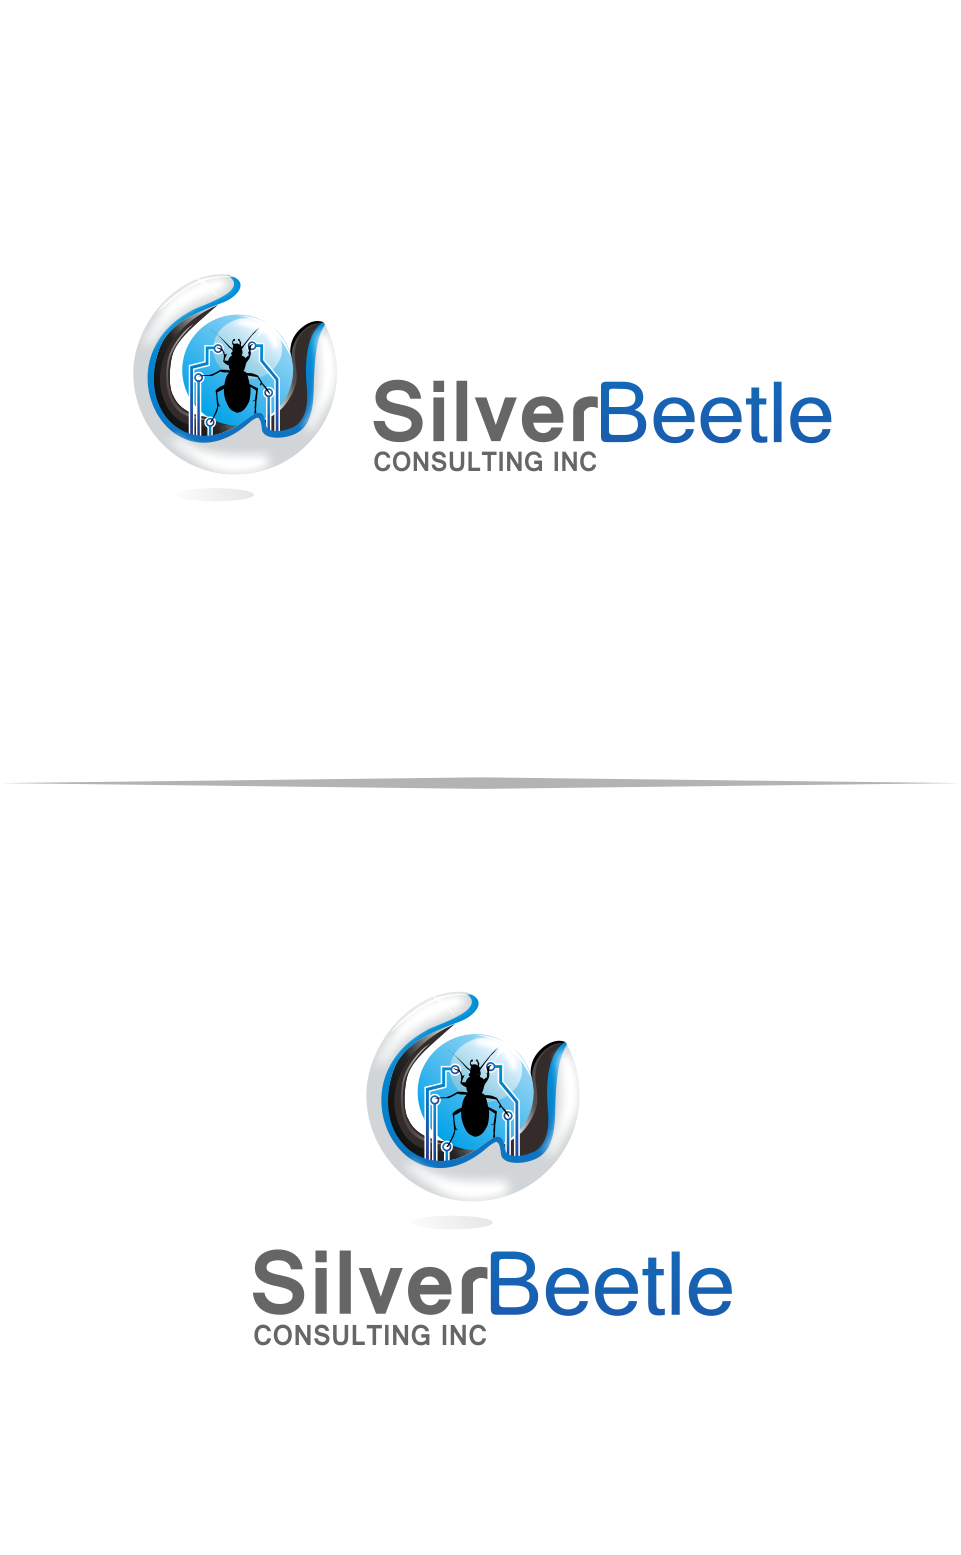 Logo Design by Mitchnick Sunardi - Entry No. 97 in the Logo Design Contest Silver Beetle Consulting Inc. Logo Design.